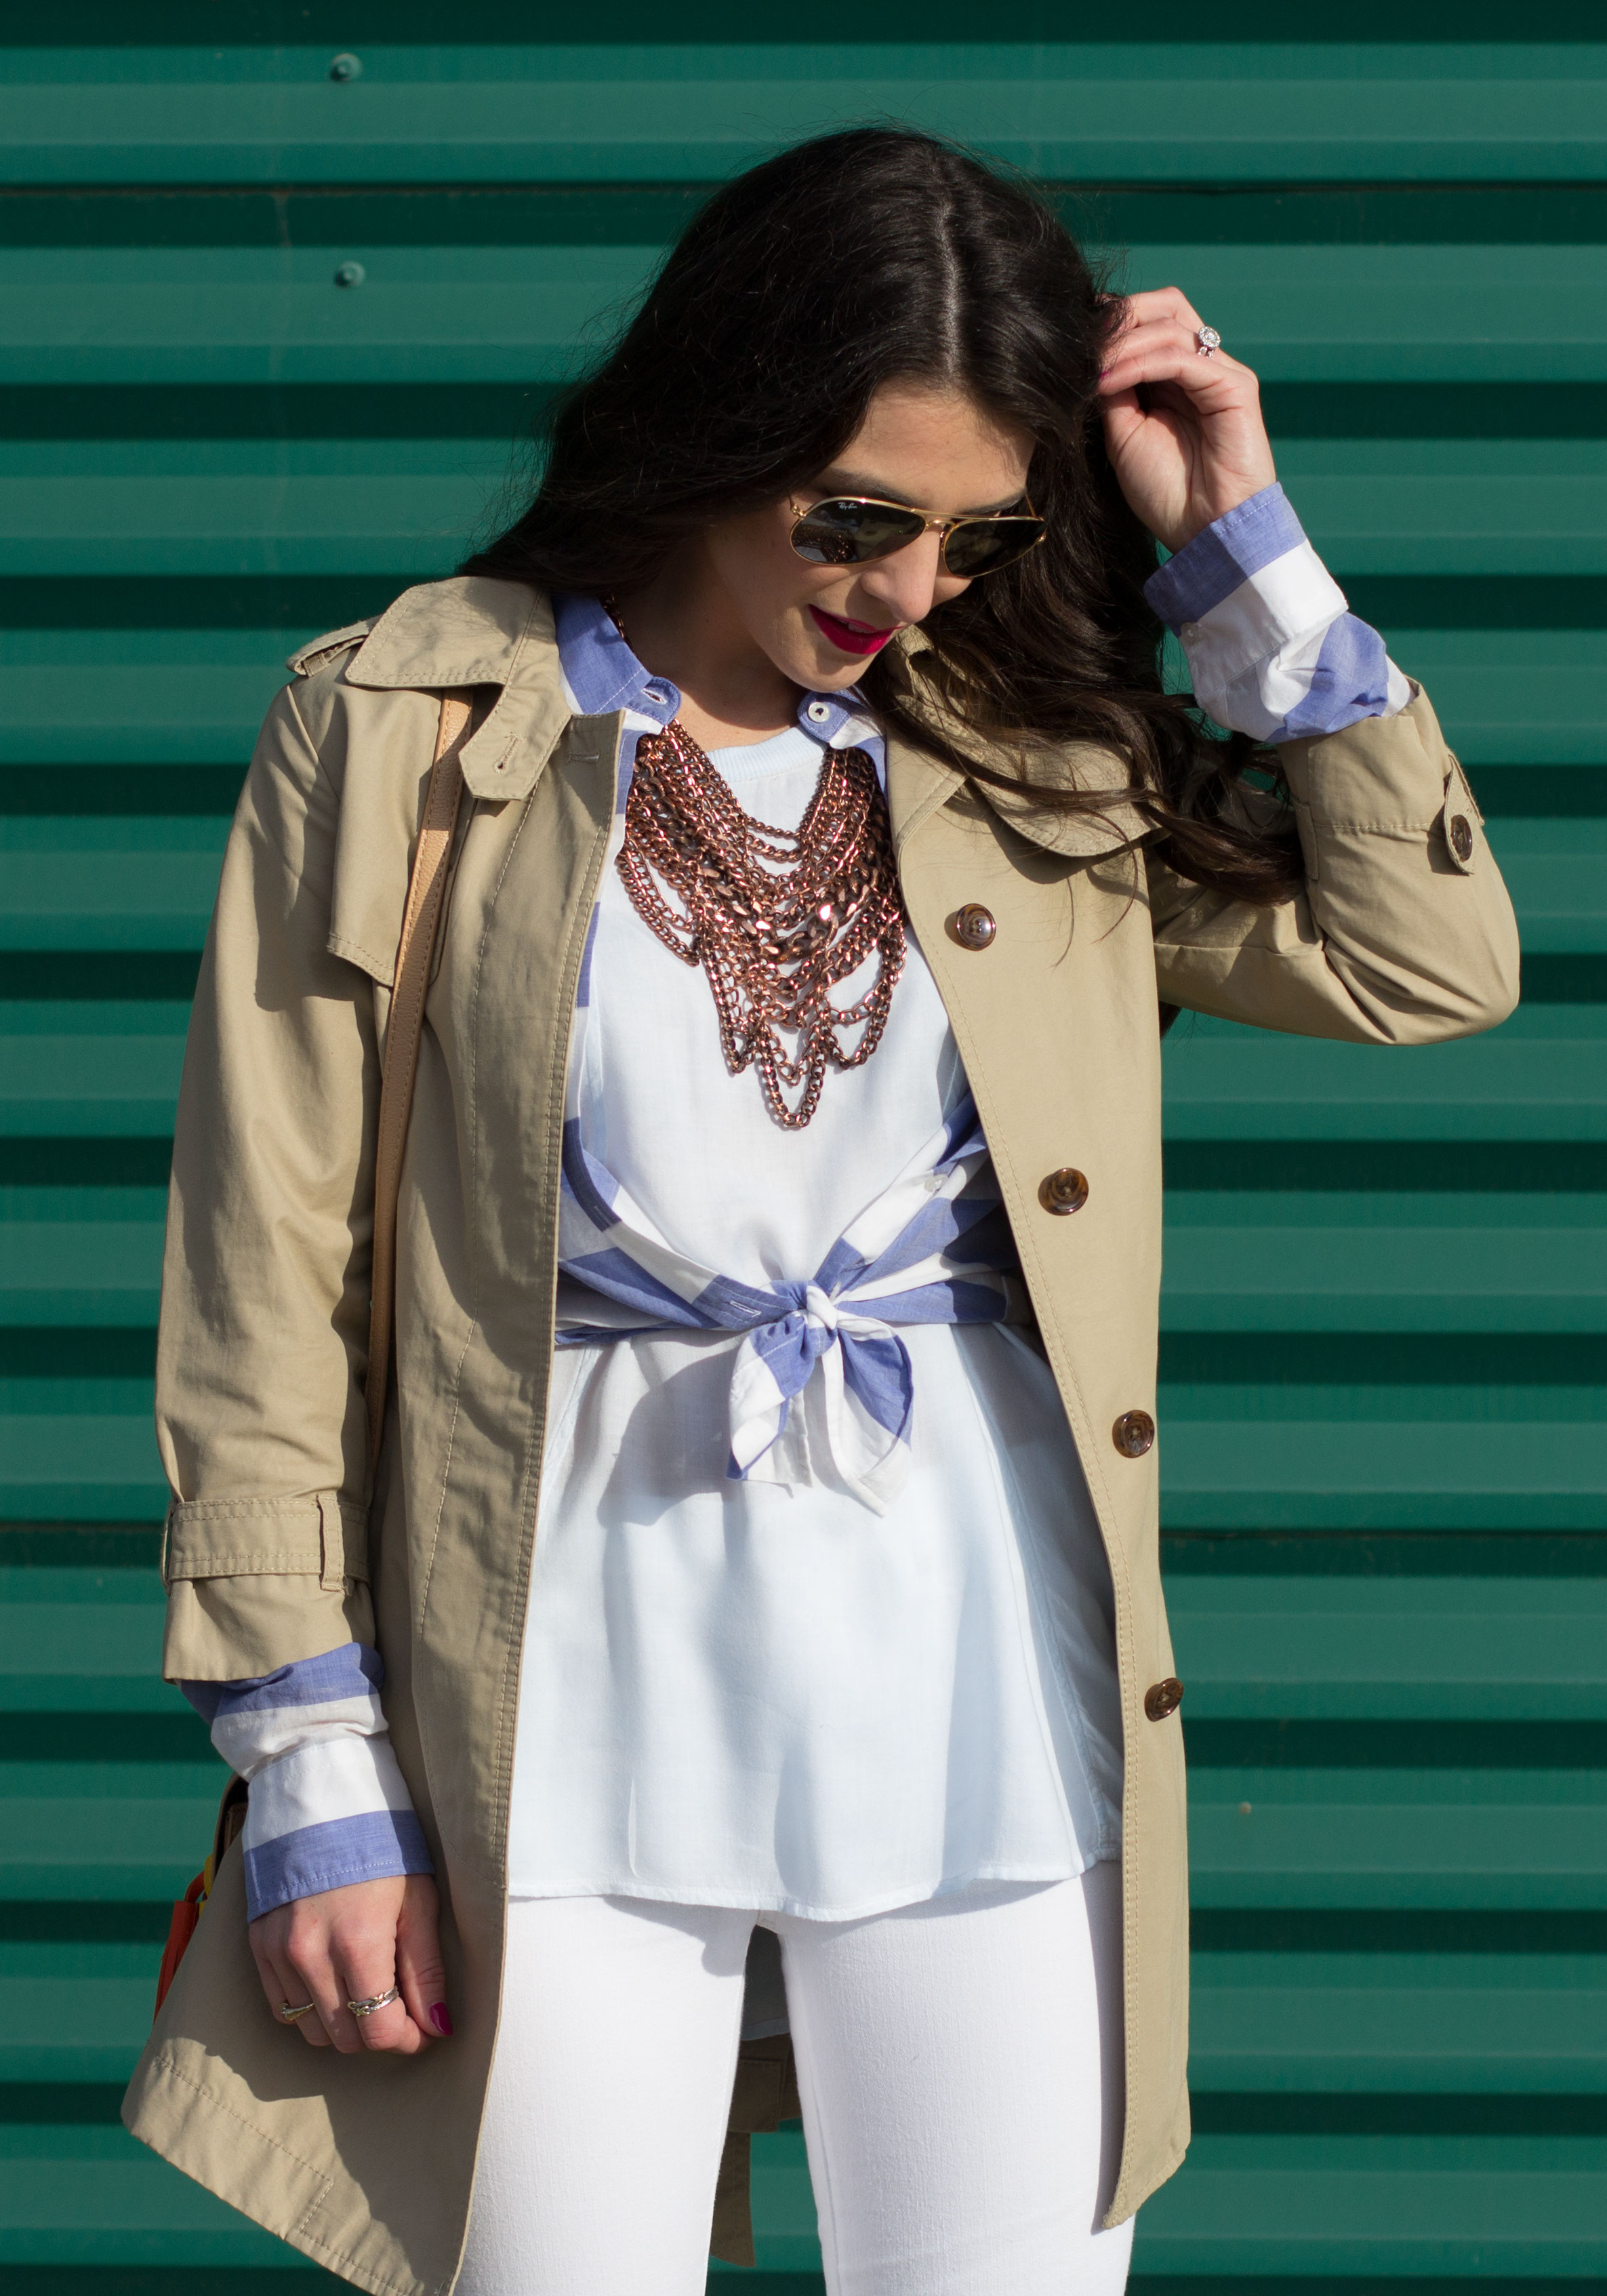 Spring Transitional Outfit, Banana Republic Trench Coat, Blue and White Stripe Shirt, High Low Layering Tank, Baublebar Courtney Bib Necklace, Destroyed White Skinny Jeans, and Sam Edelman Dayna Pumps